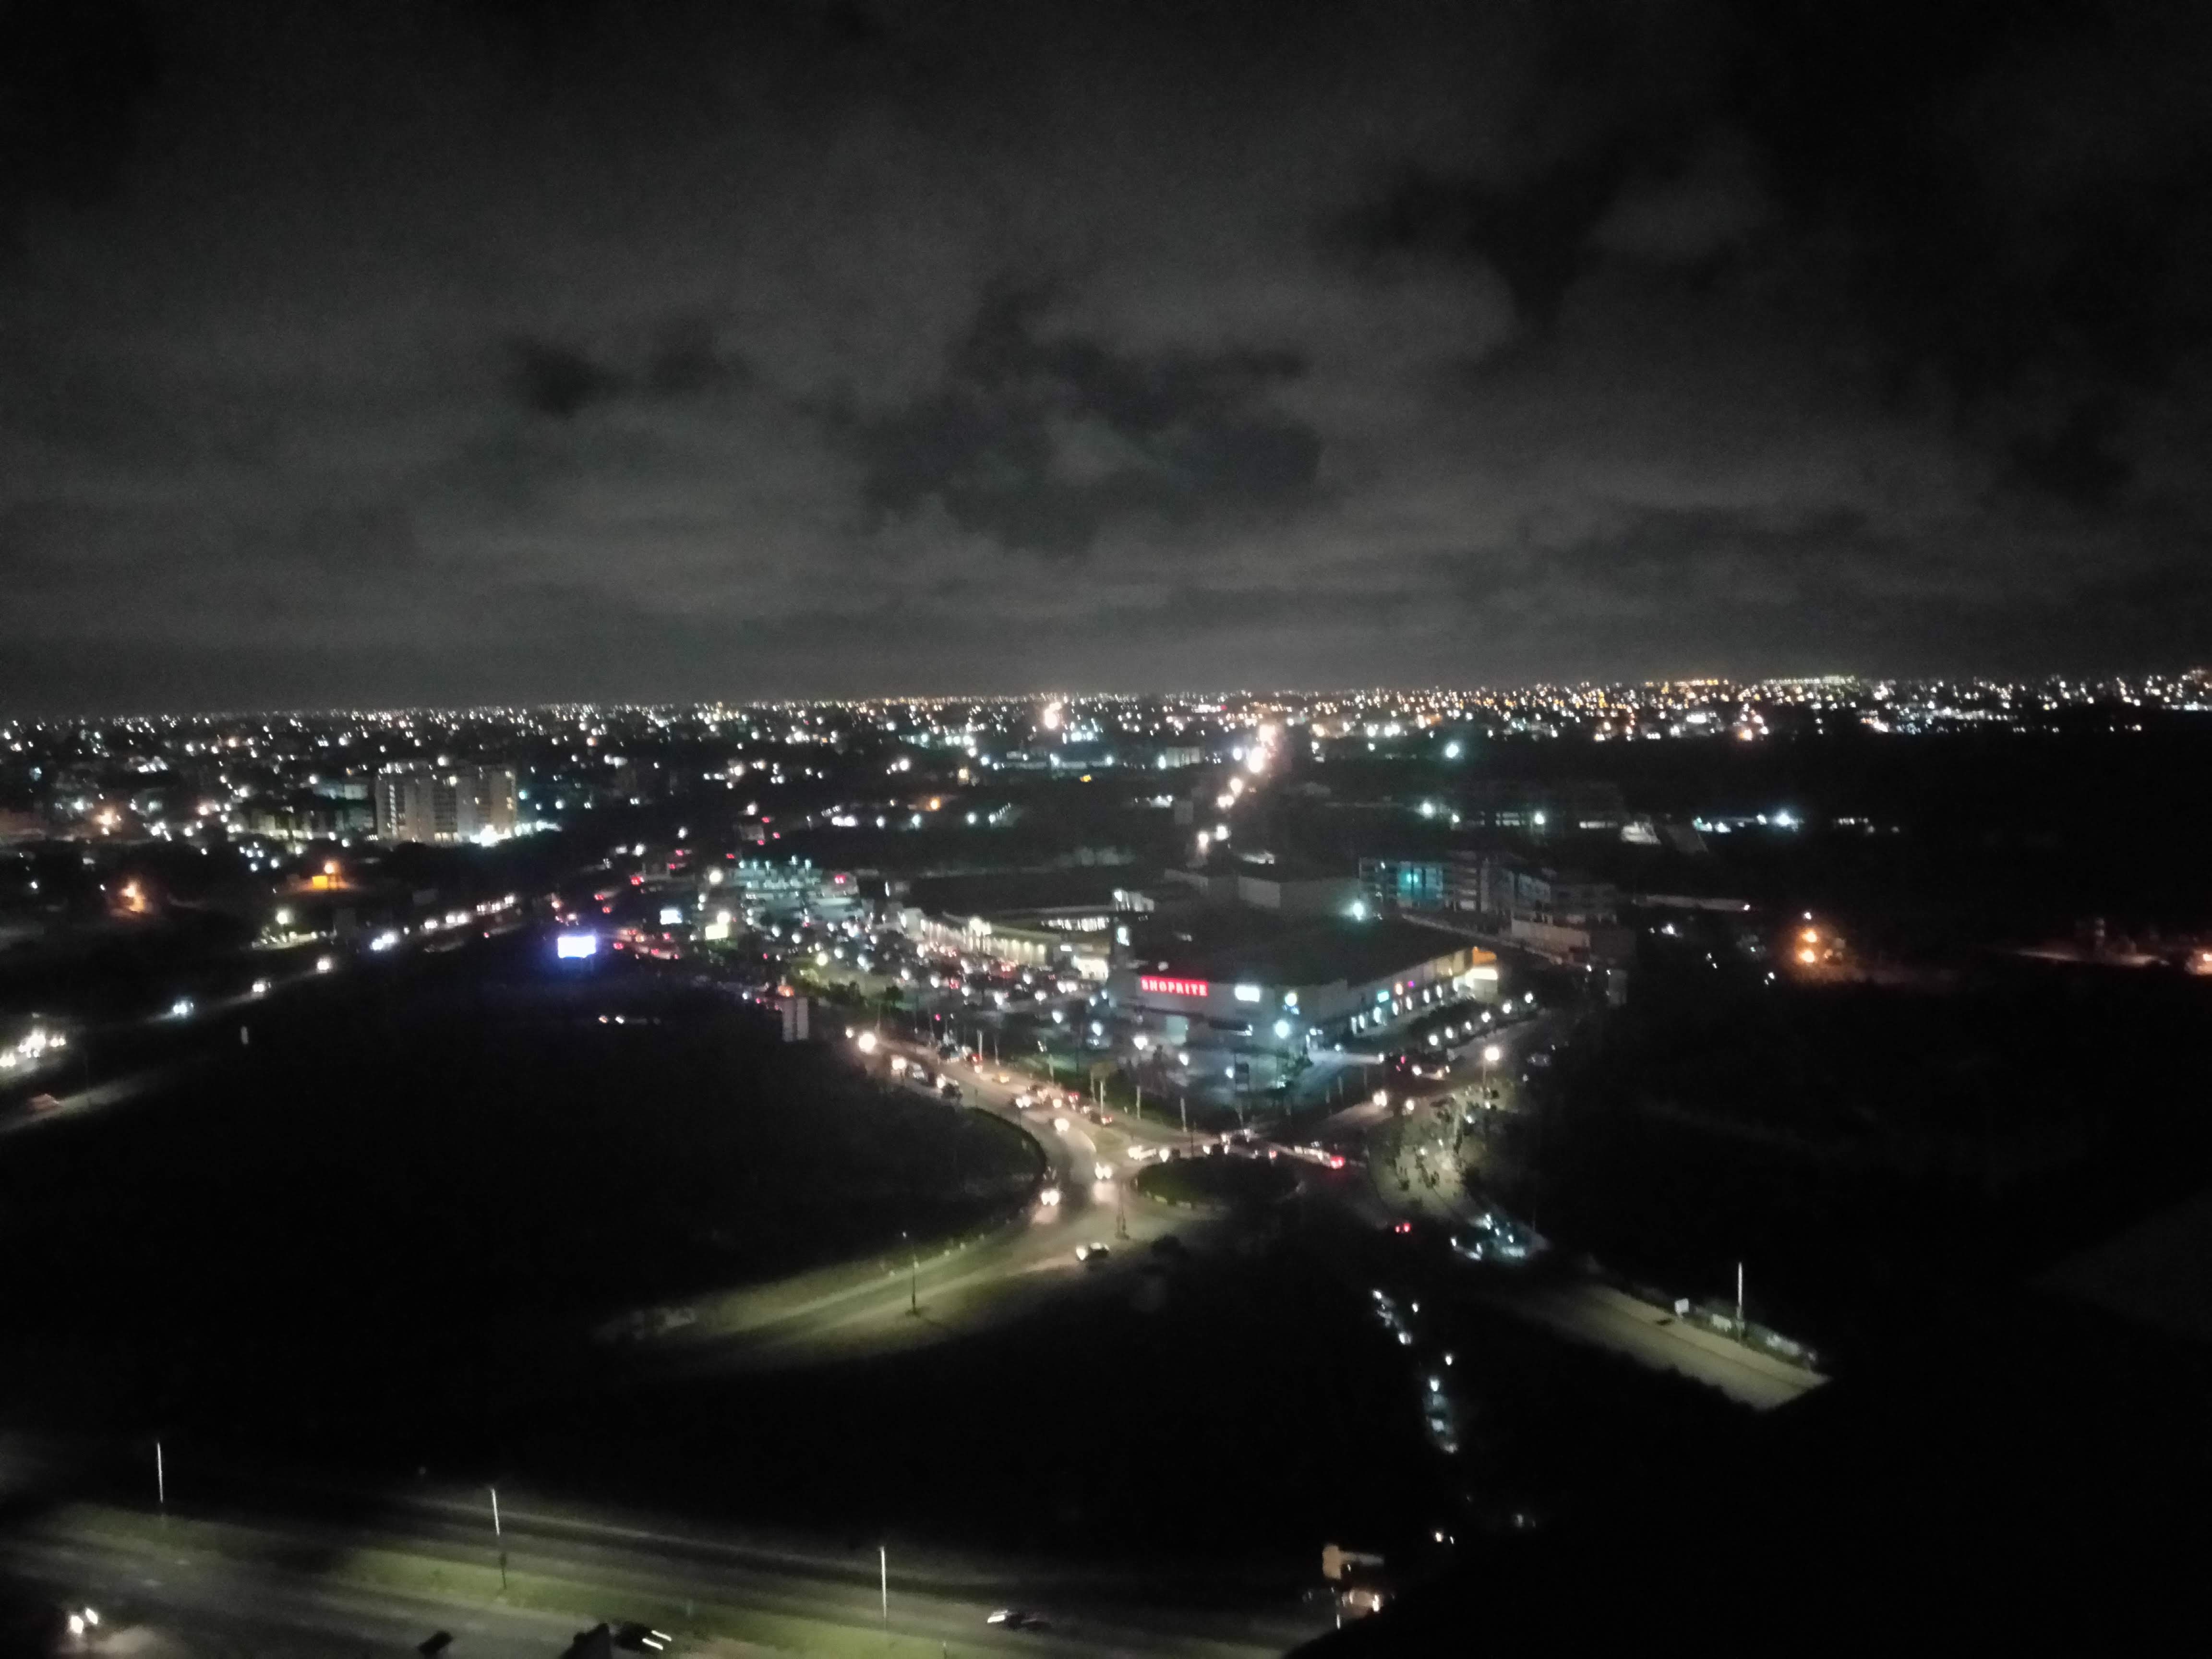 A view of Accra from the top of the Alto Tower. Accra City Mall can be seen in the distance.